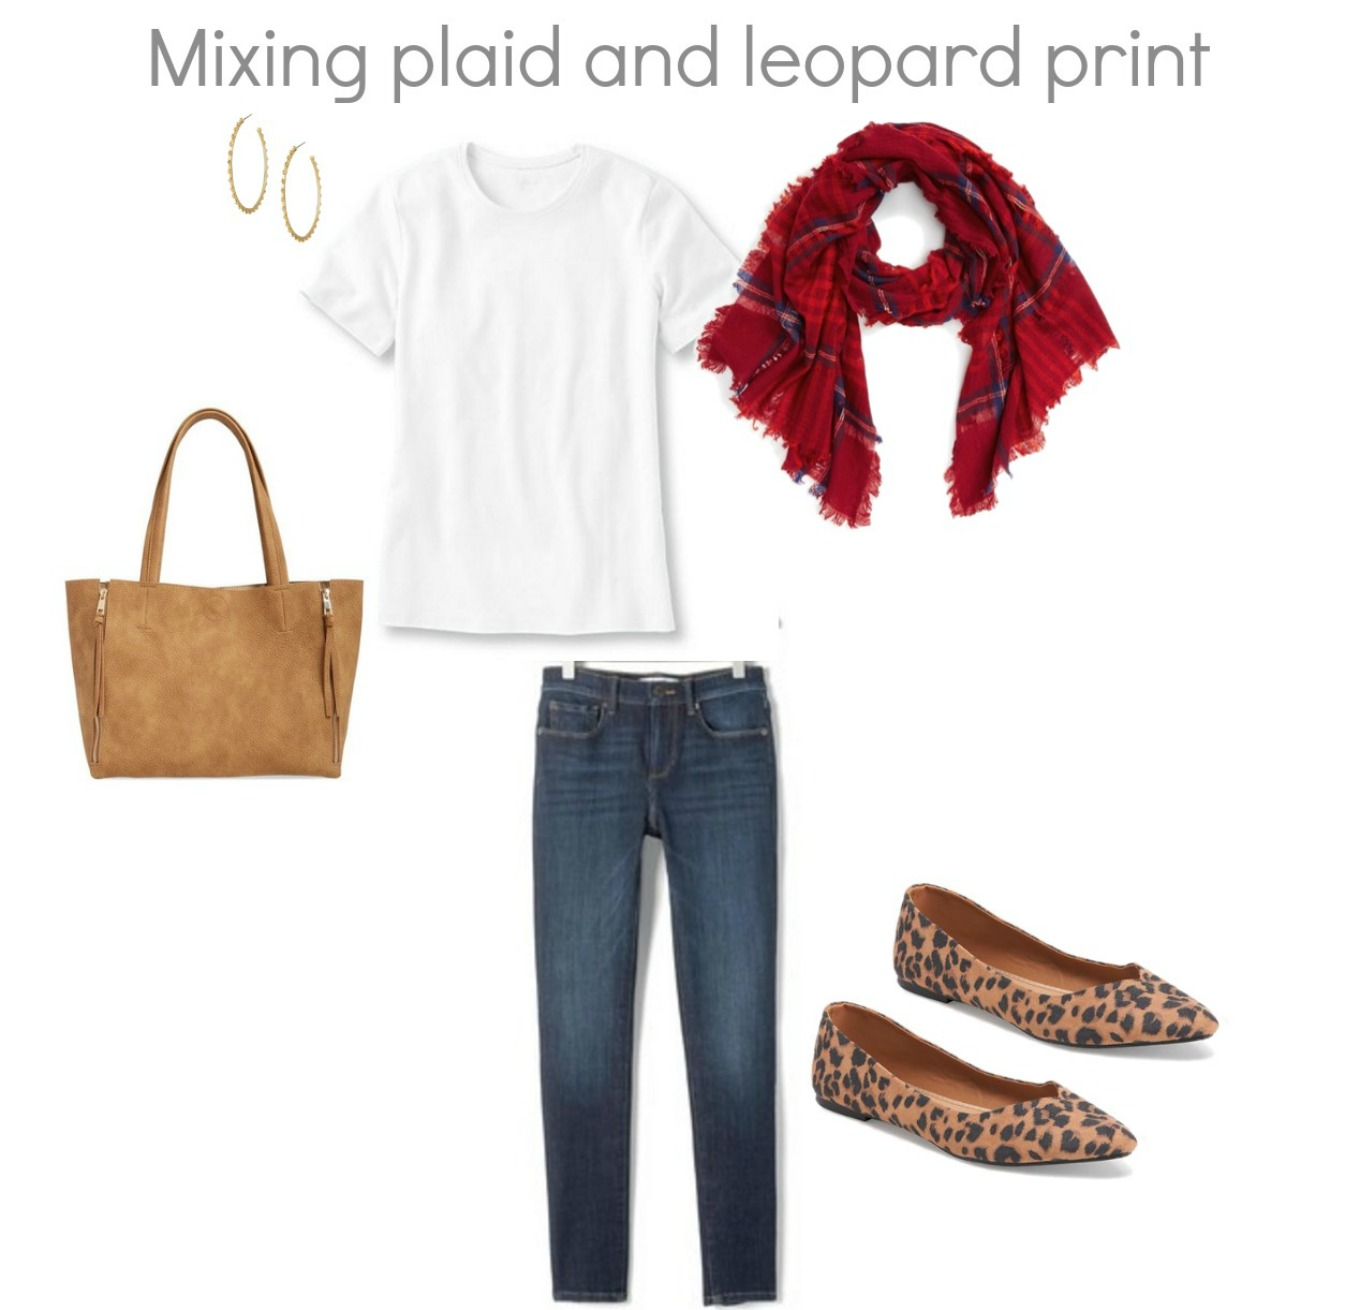 mixing-plaid-and-leopard-print